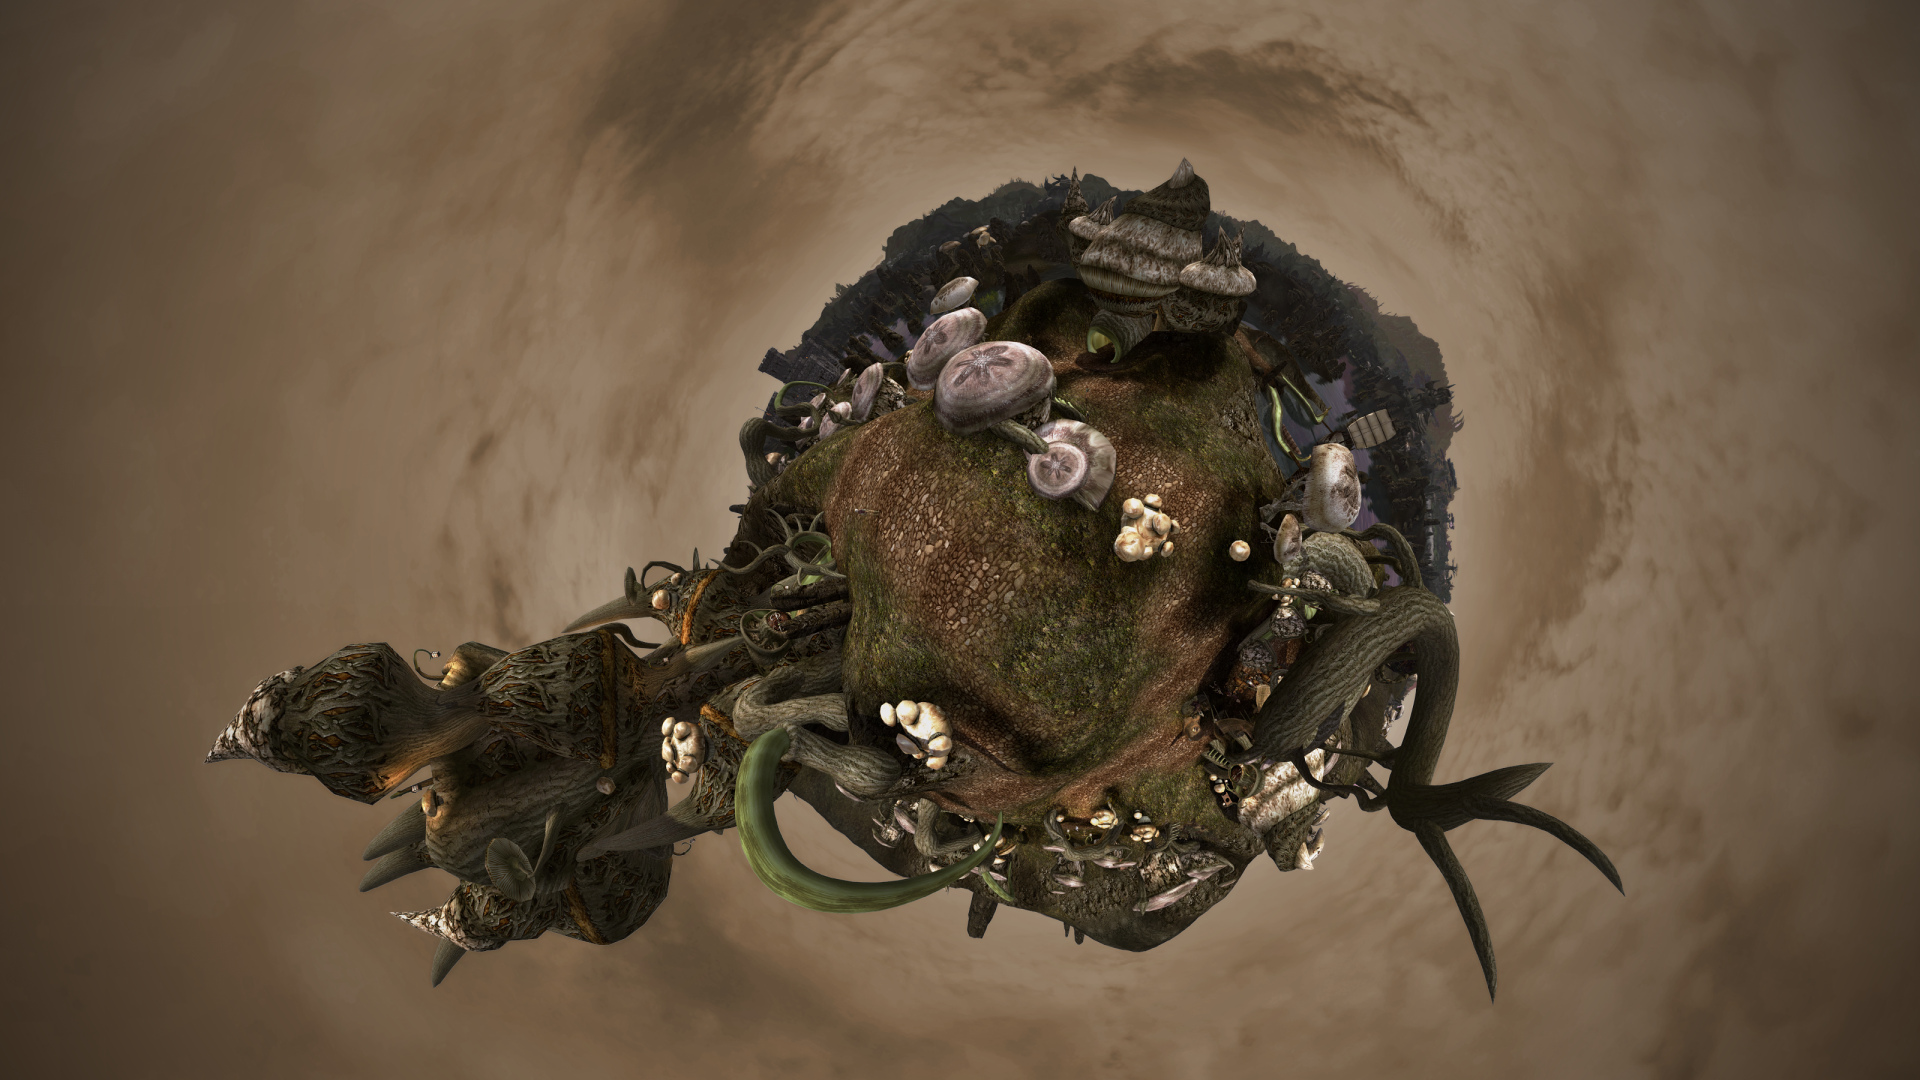 Sadrith Mora on little planet II